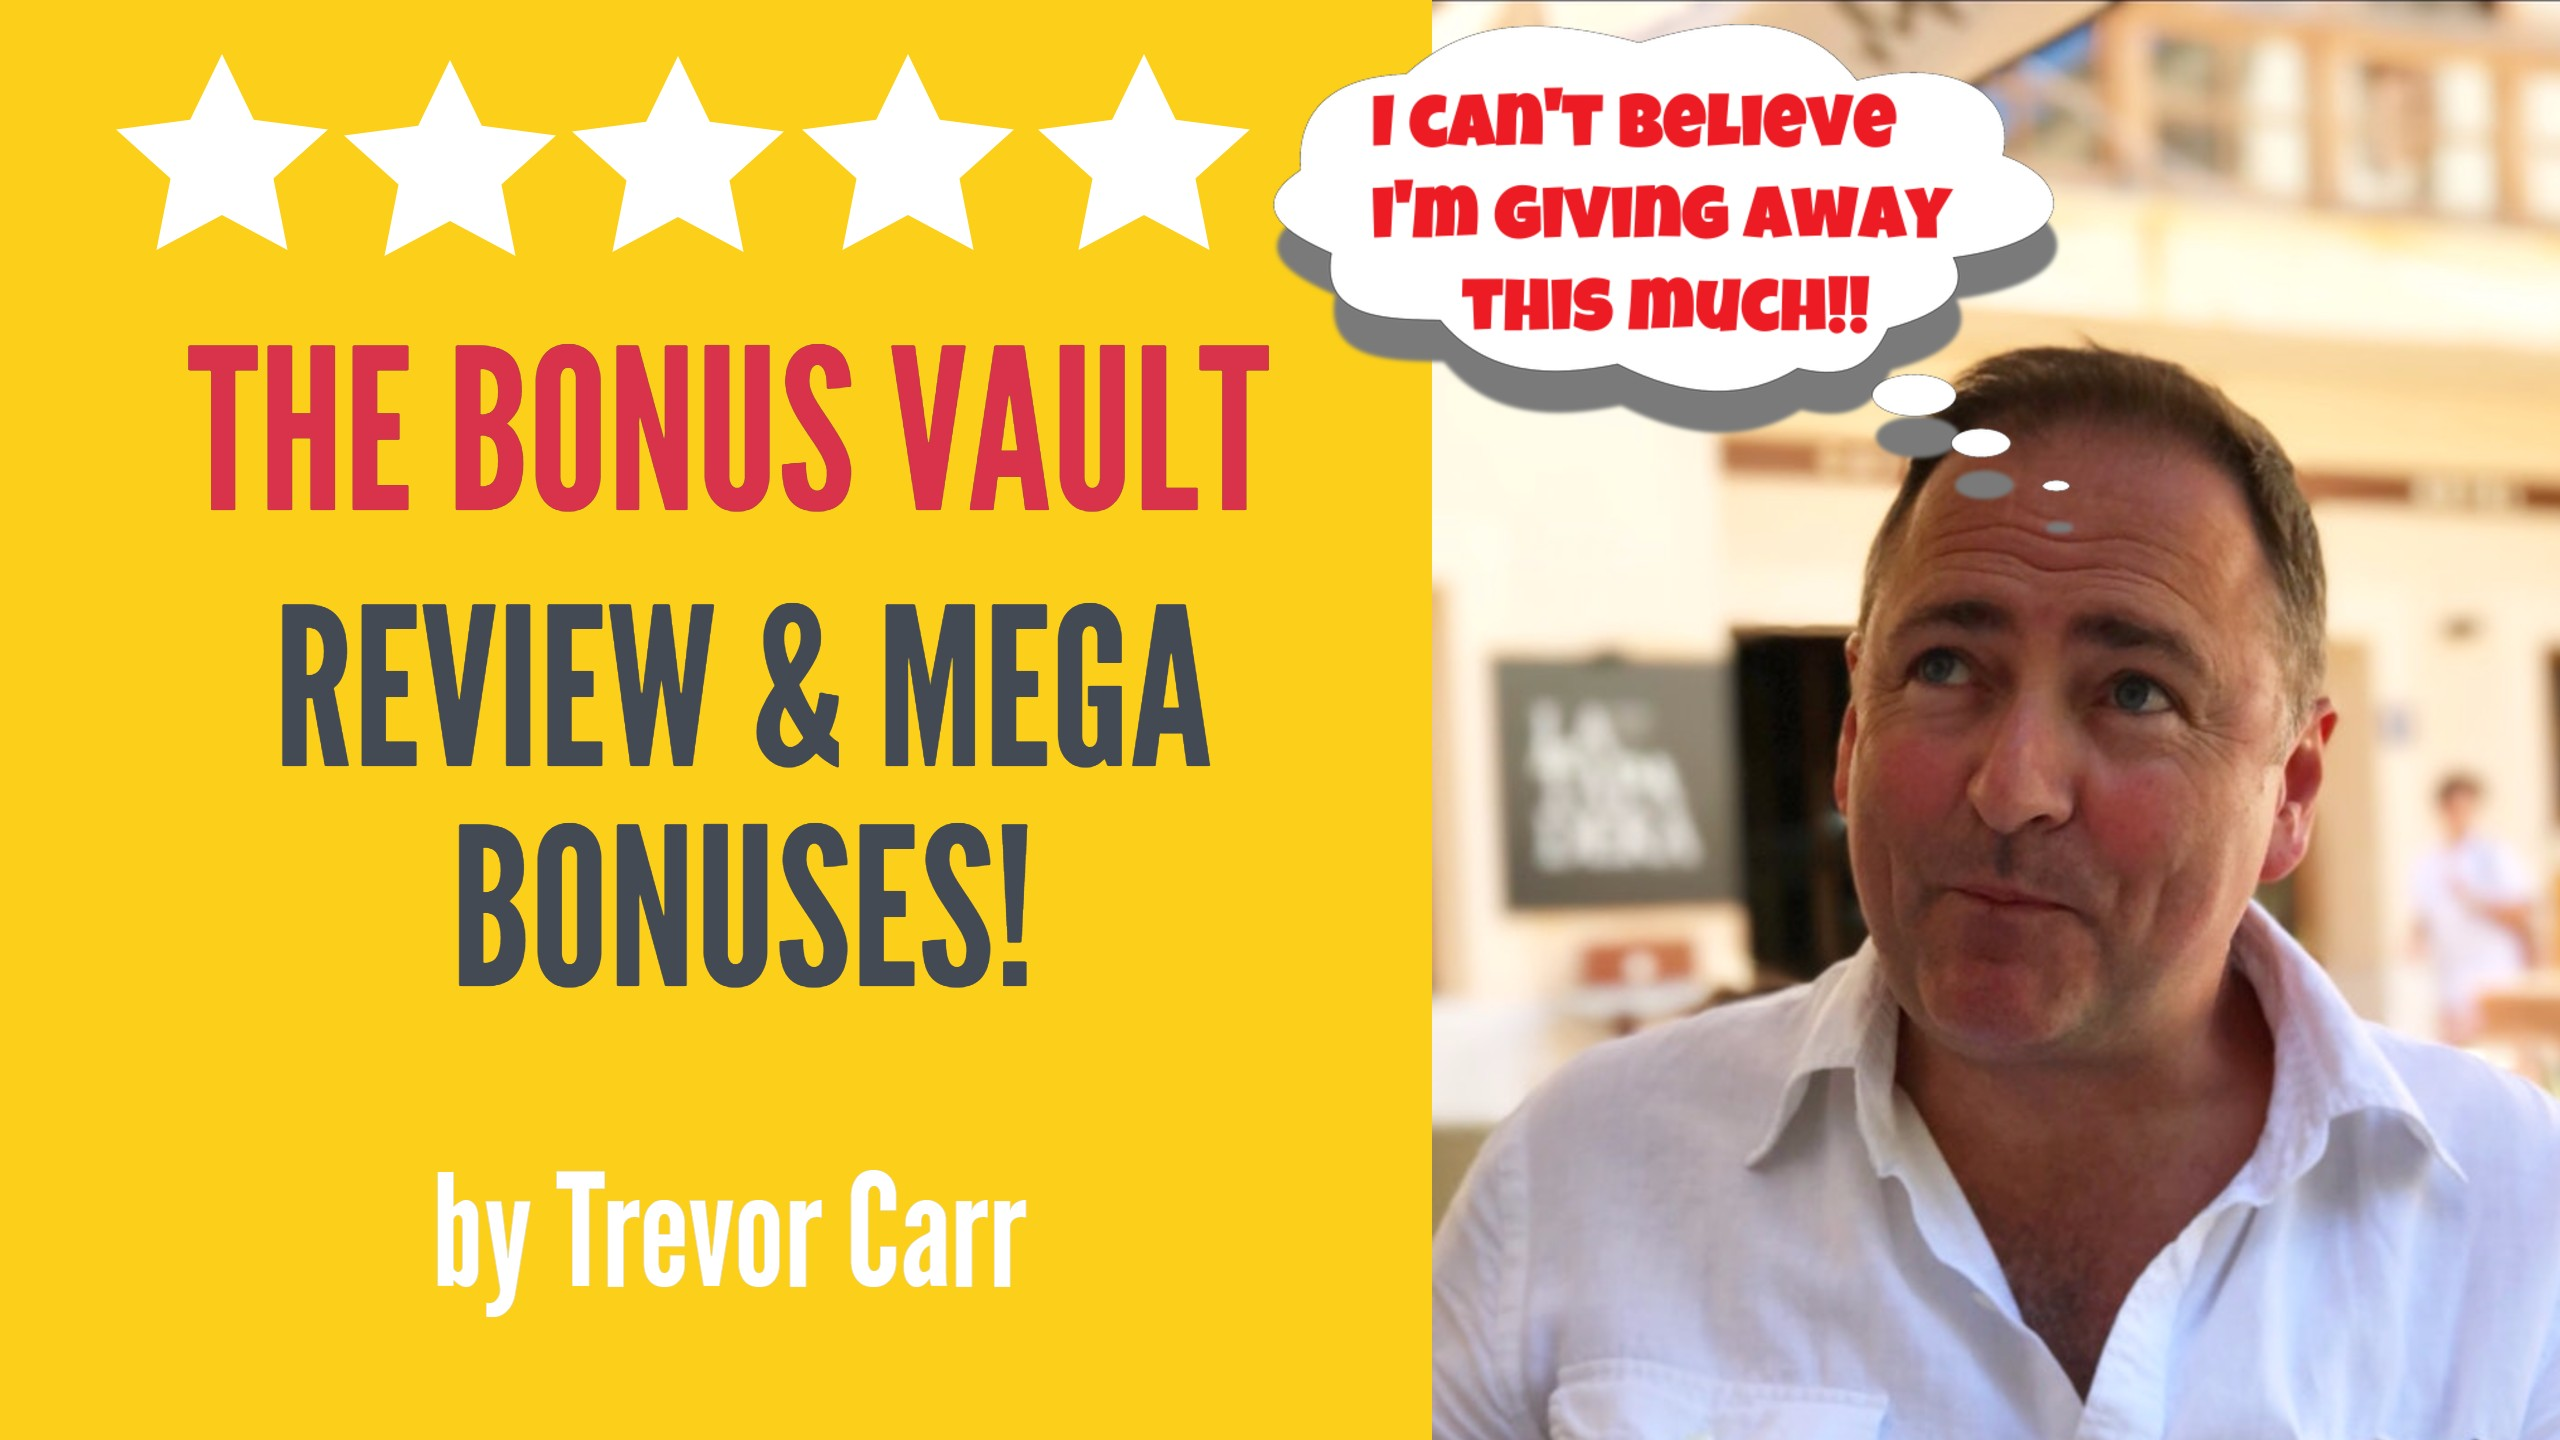 The Bonus Vault Review & Bonuses